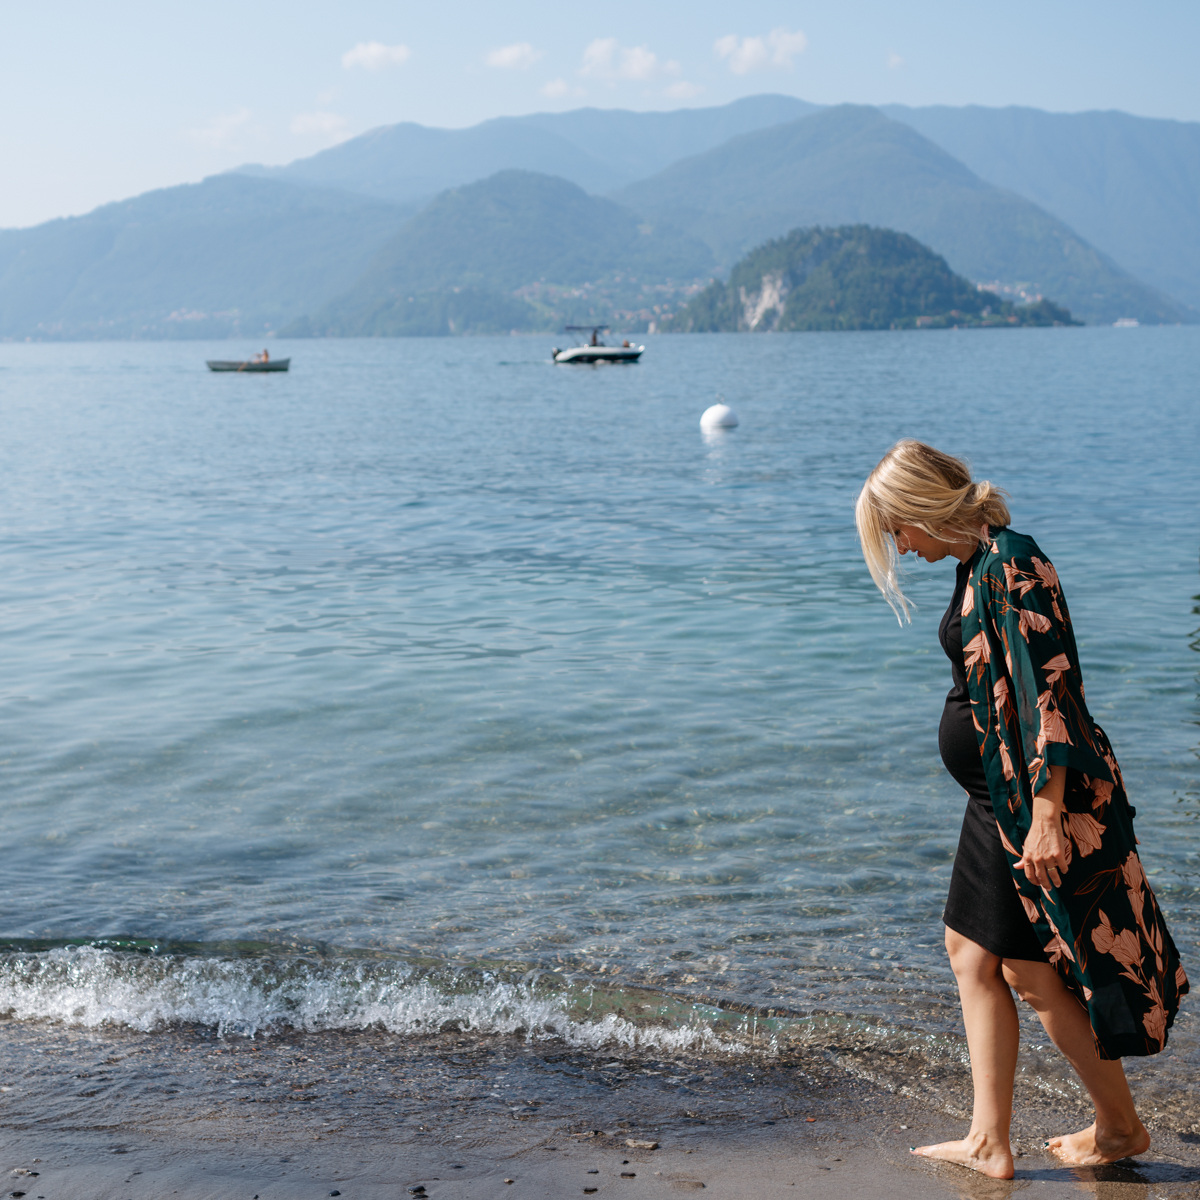 walking on the small beach in Varenna